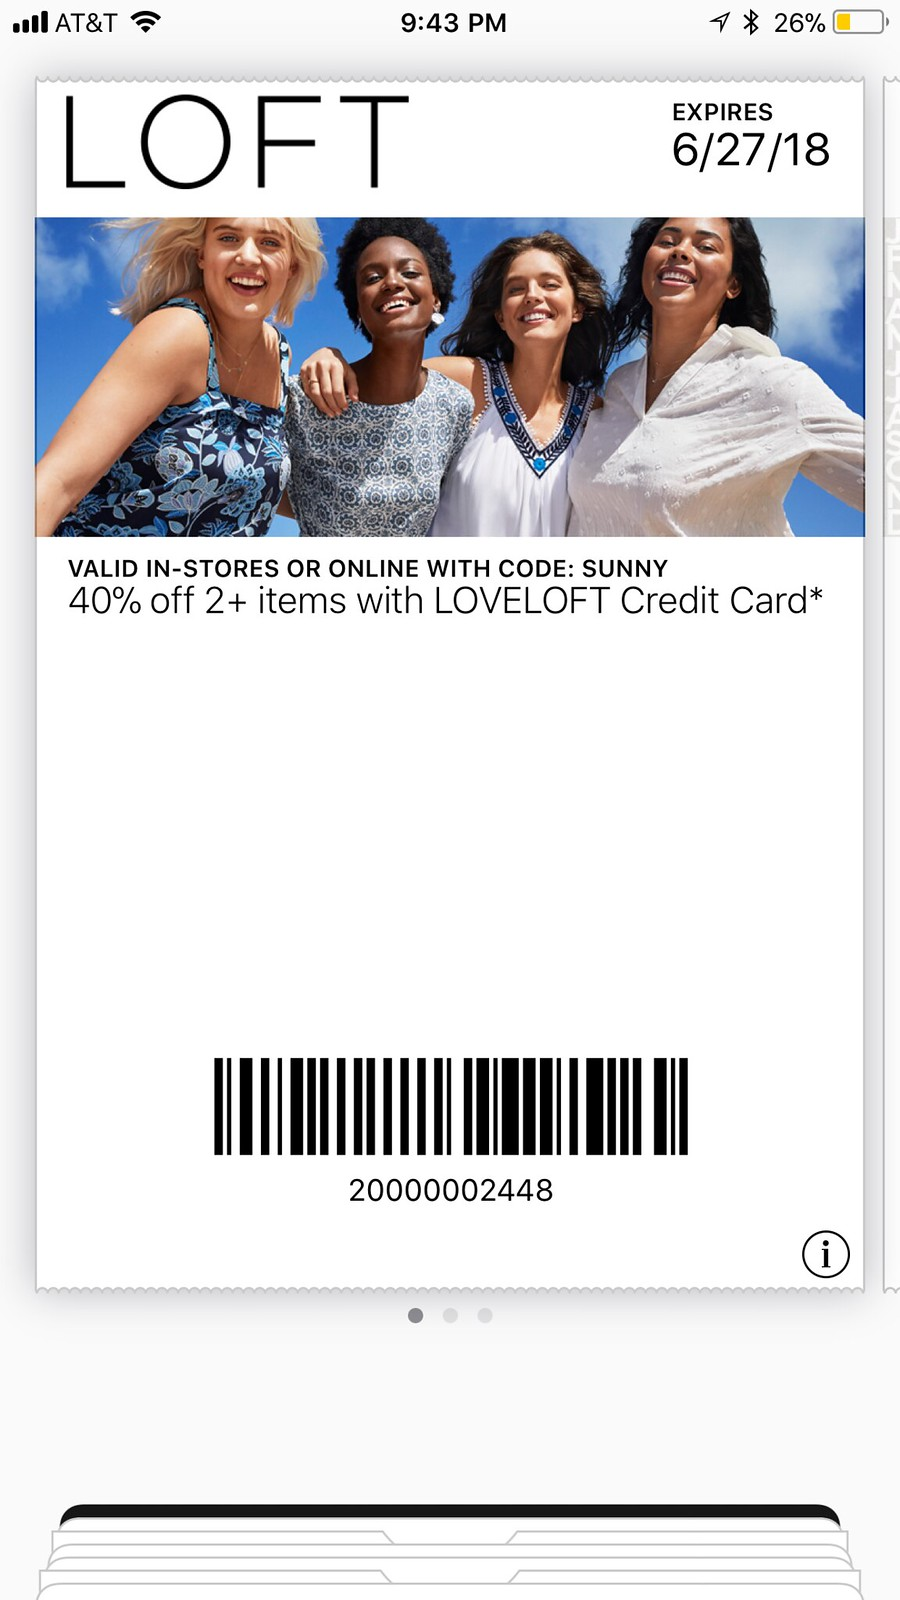 LOVELOFT Coupon Code (SUNNY) - Valid 6/7/18-6/27/18